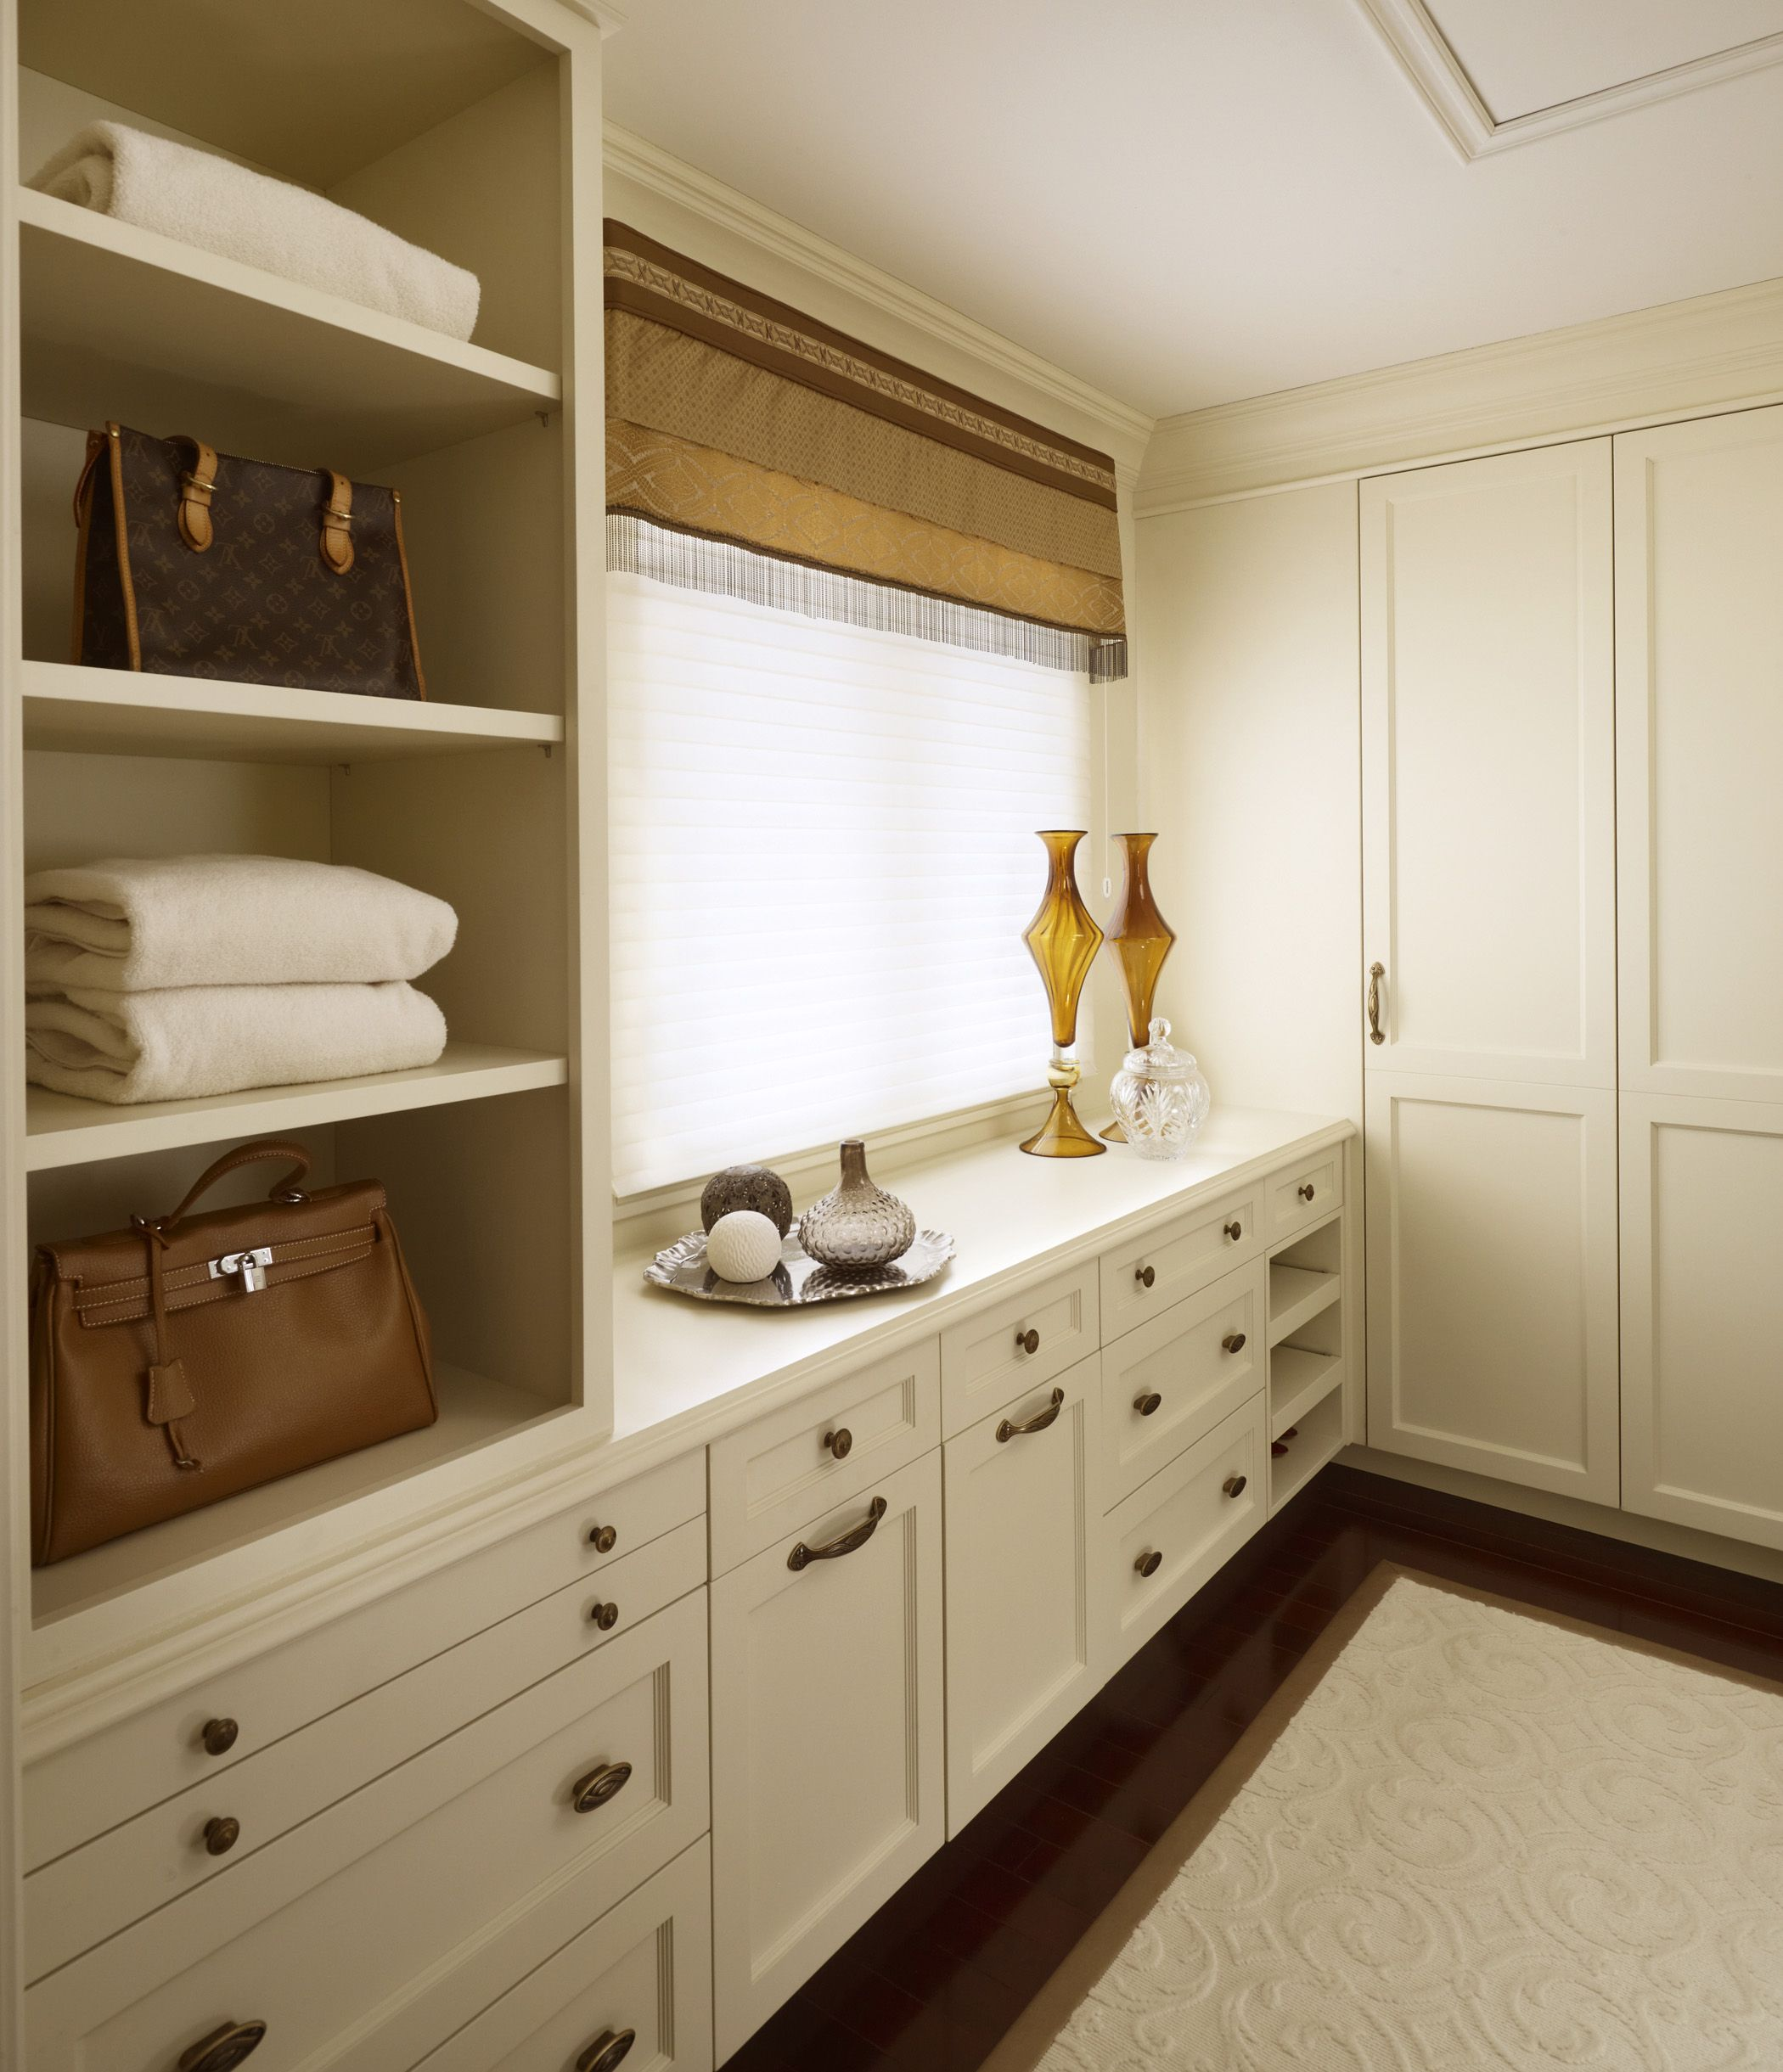 3 Kind Of Elegant Bedroom Design Ideas Includes A: The Design Ethos For This Master Suite Is One Of Elegant